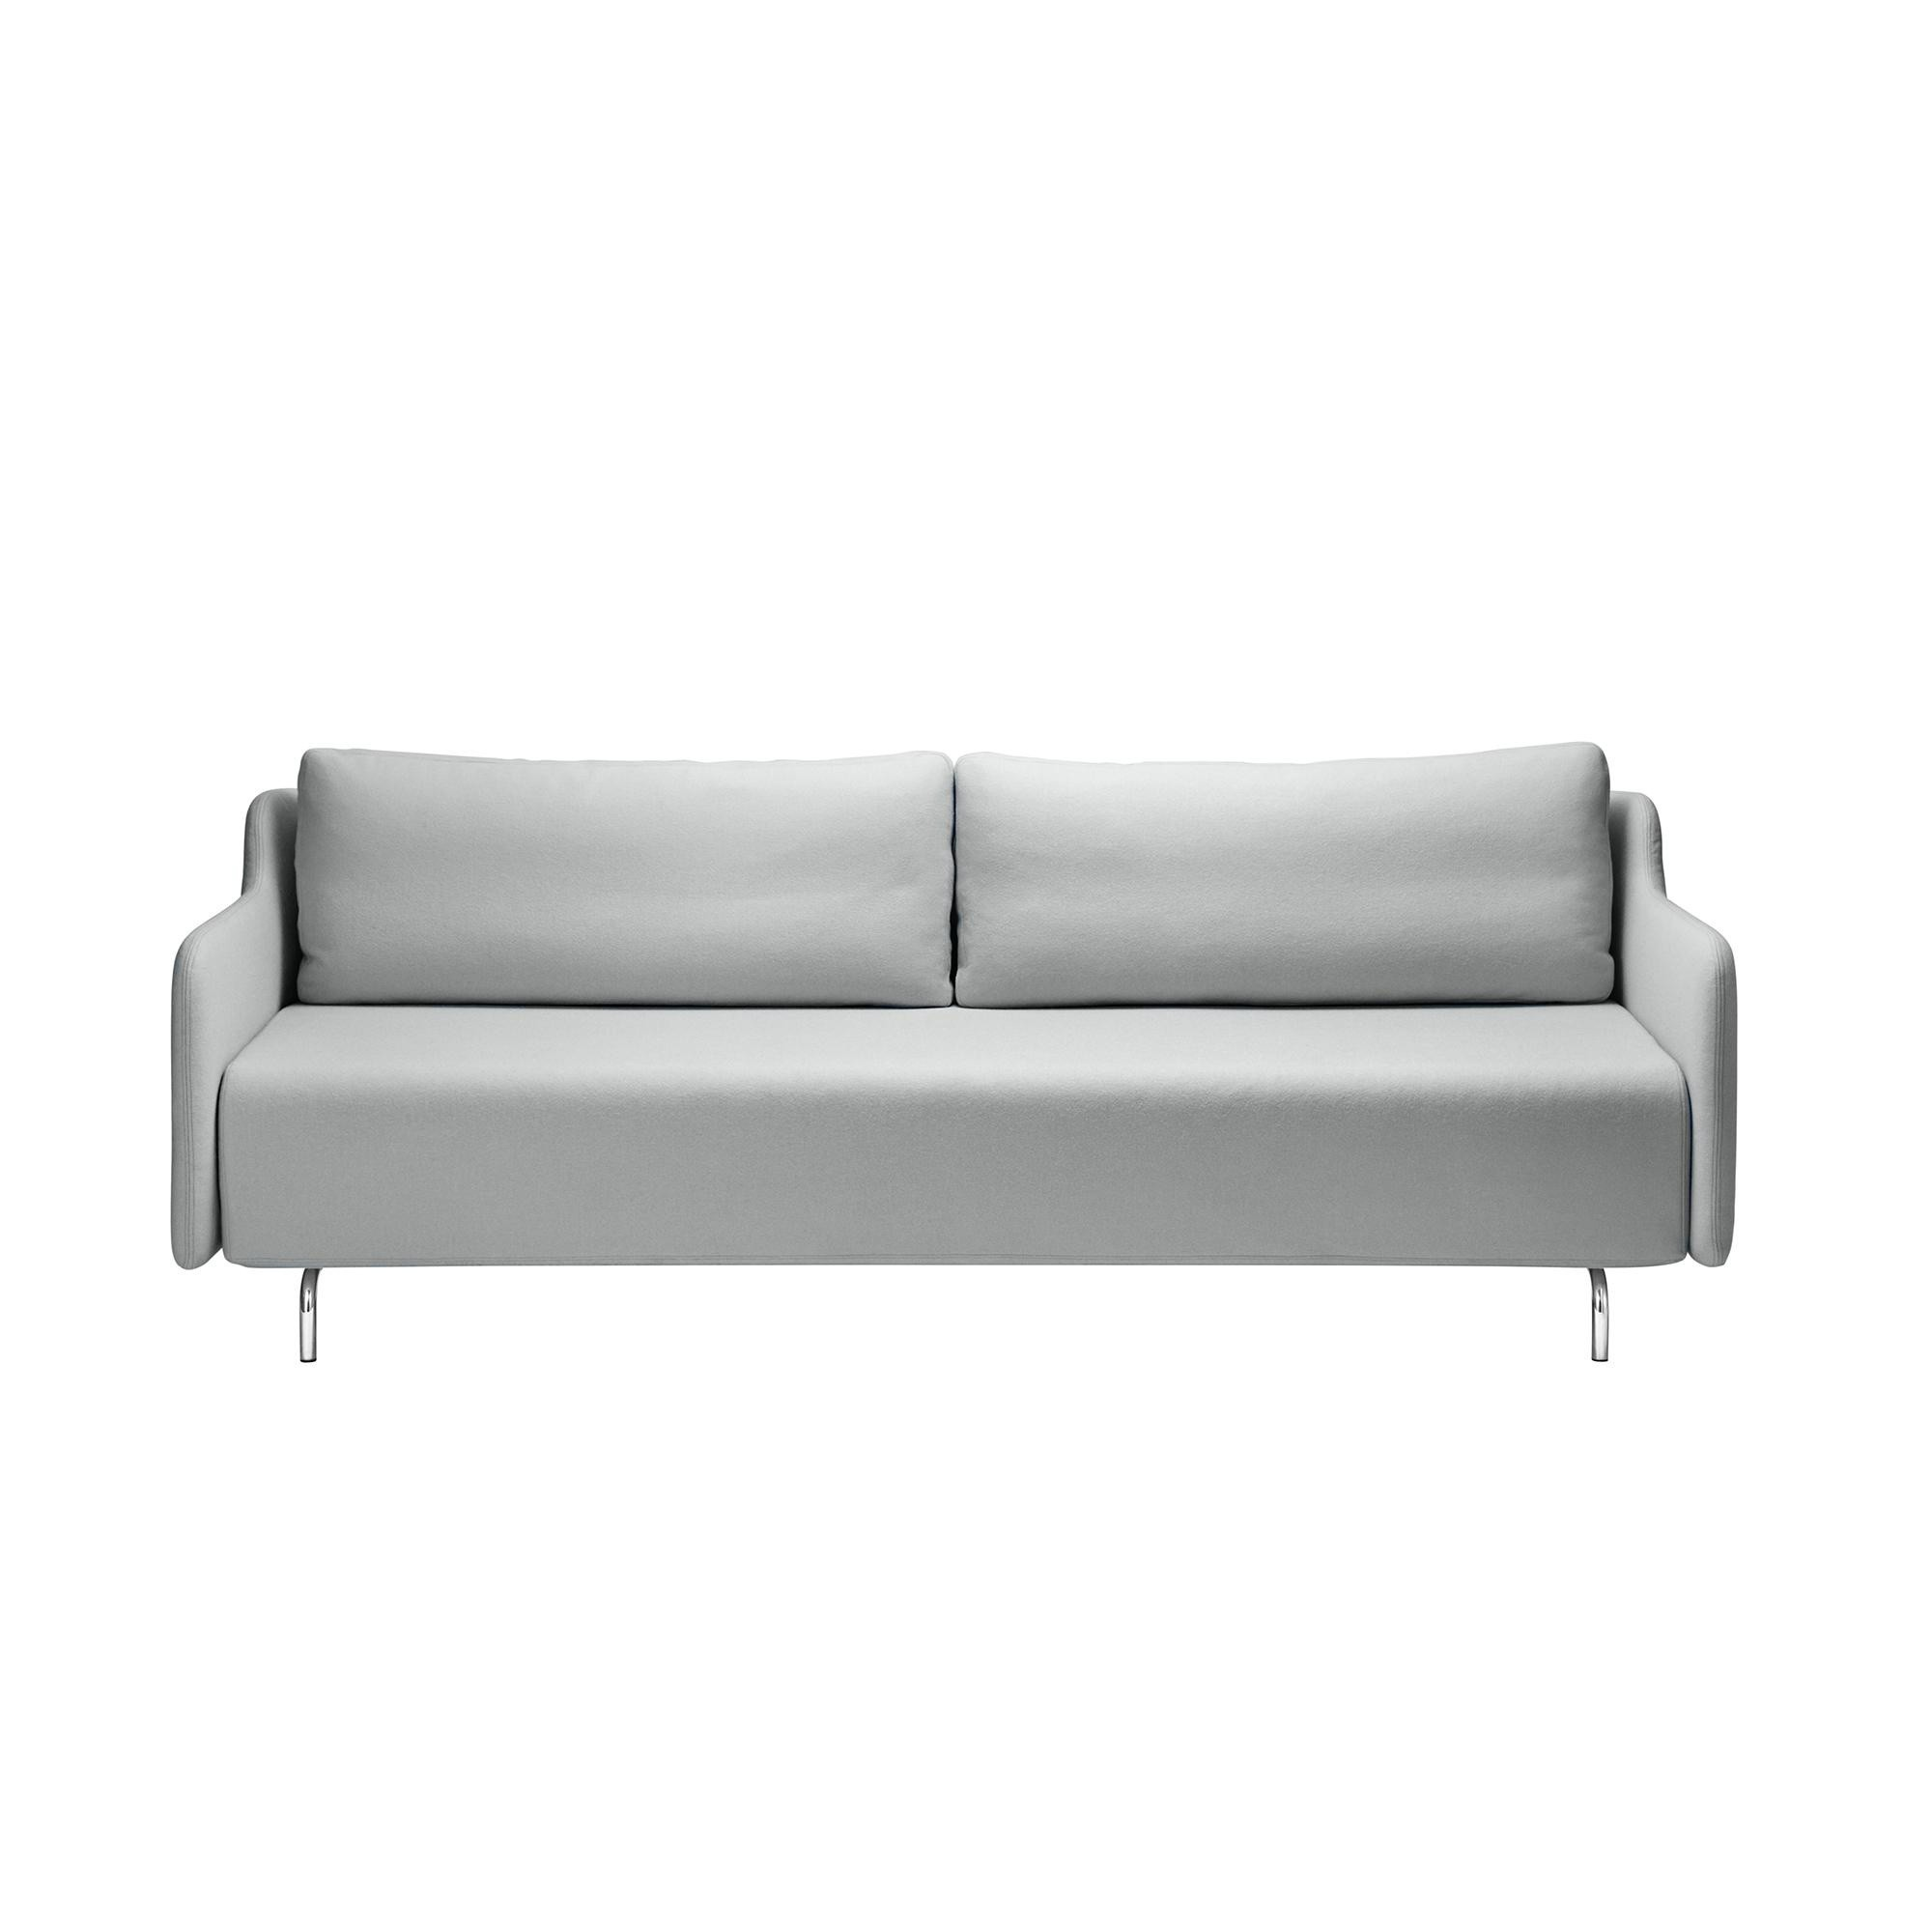 Softline Venus Sofa Bed Light Grey Fabric